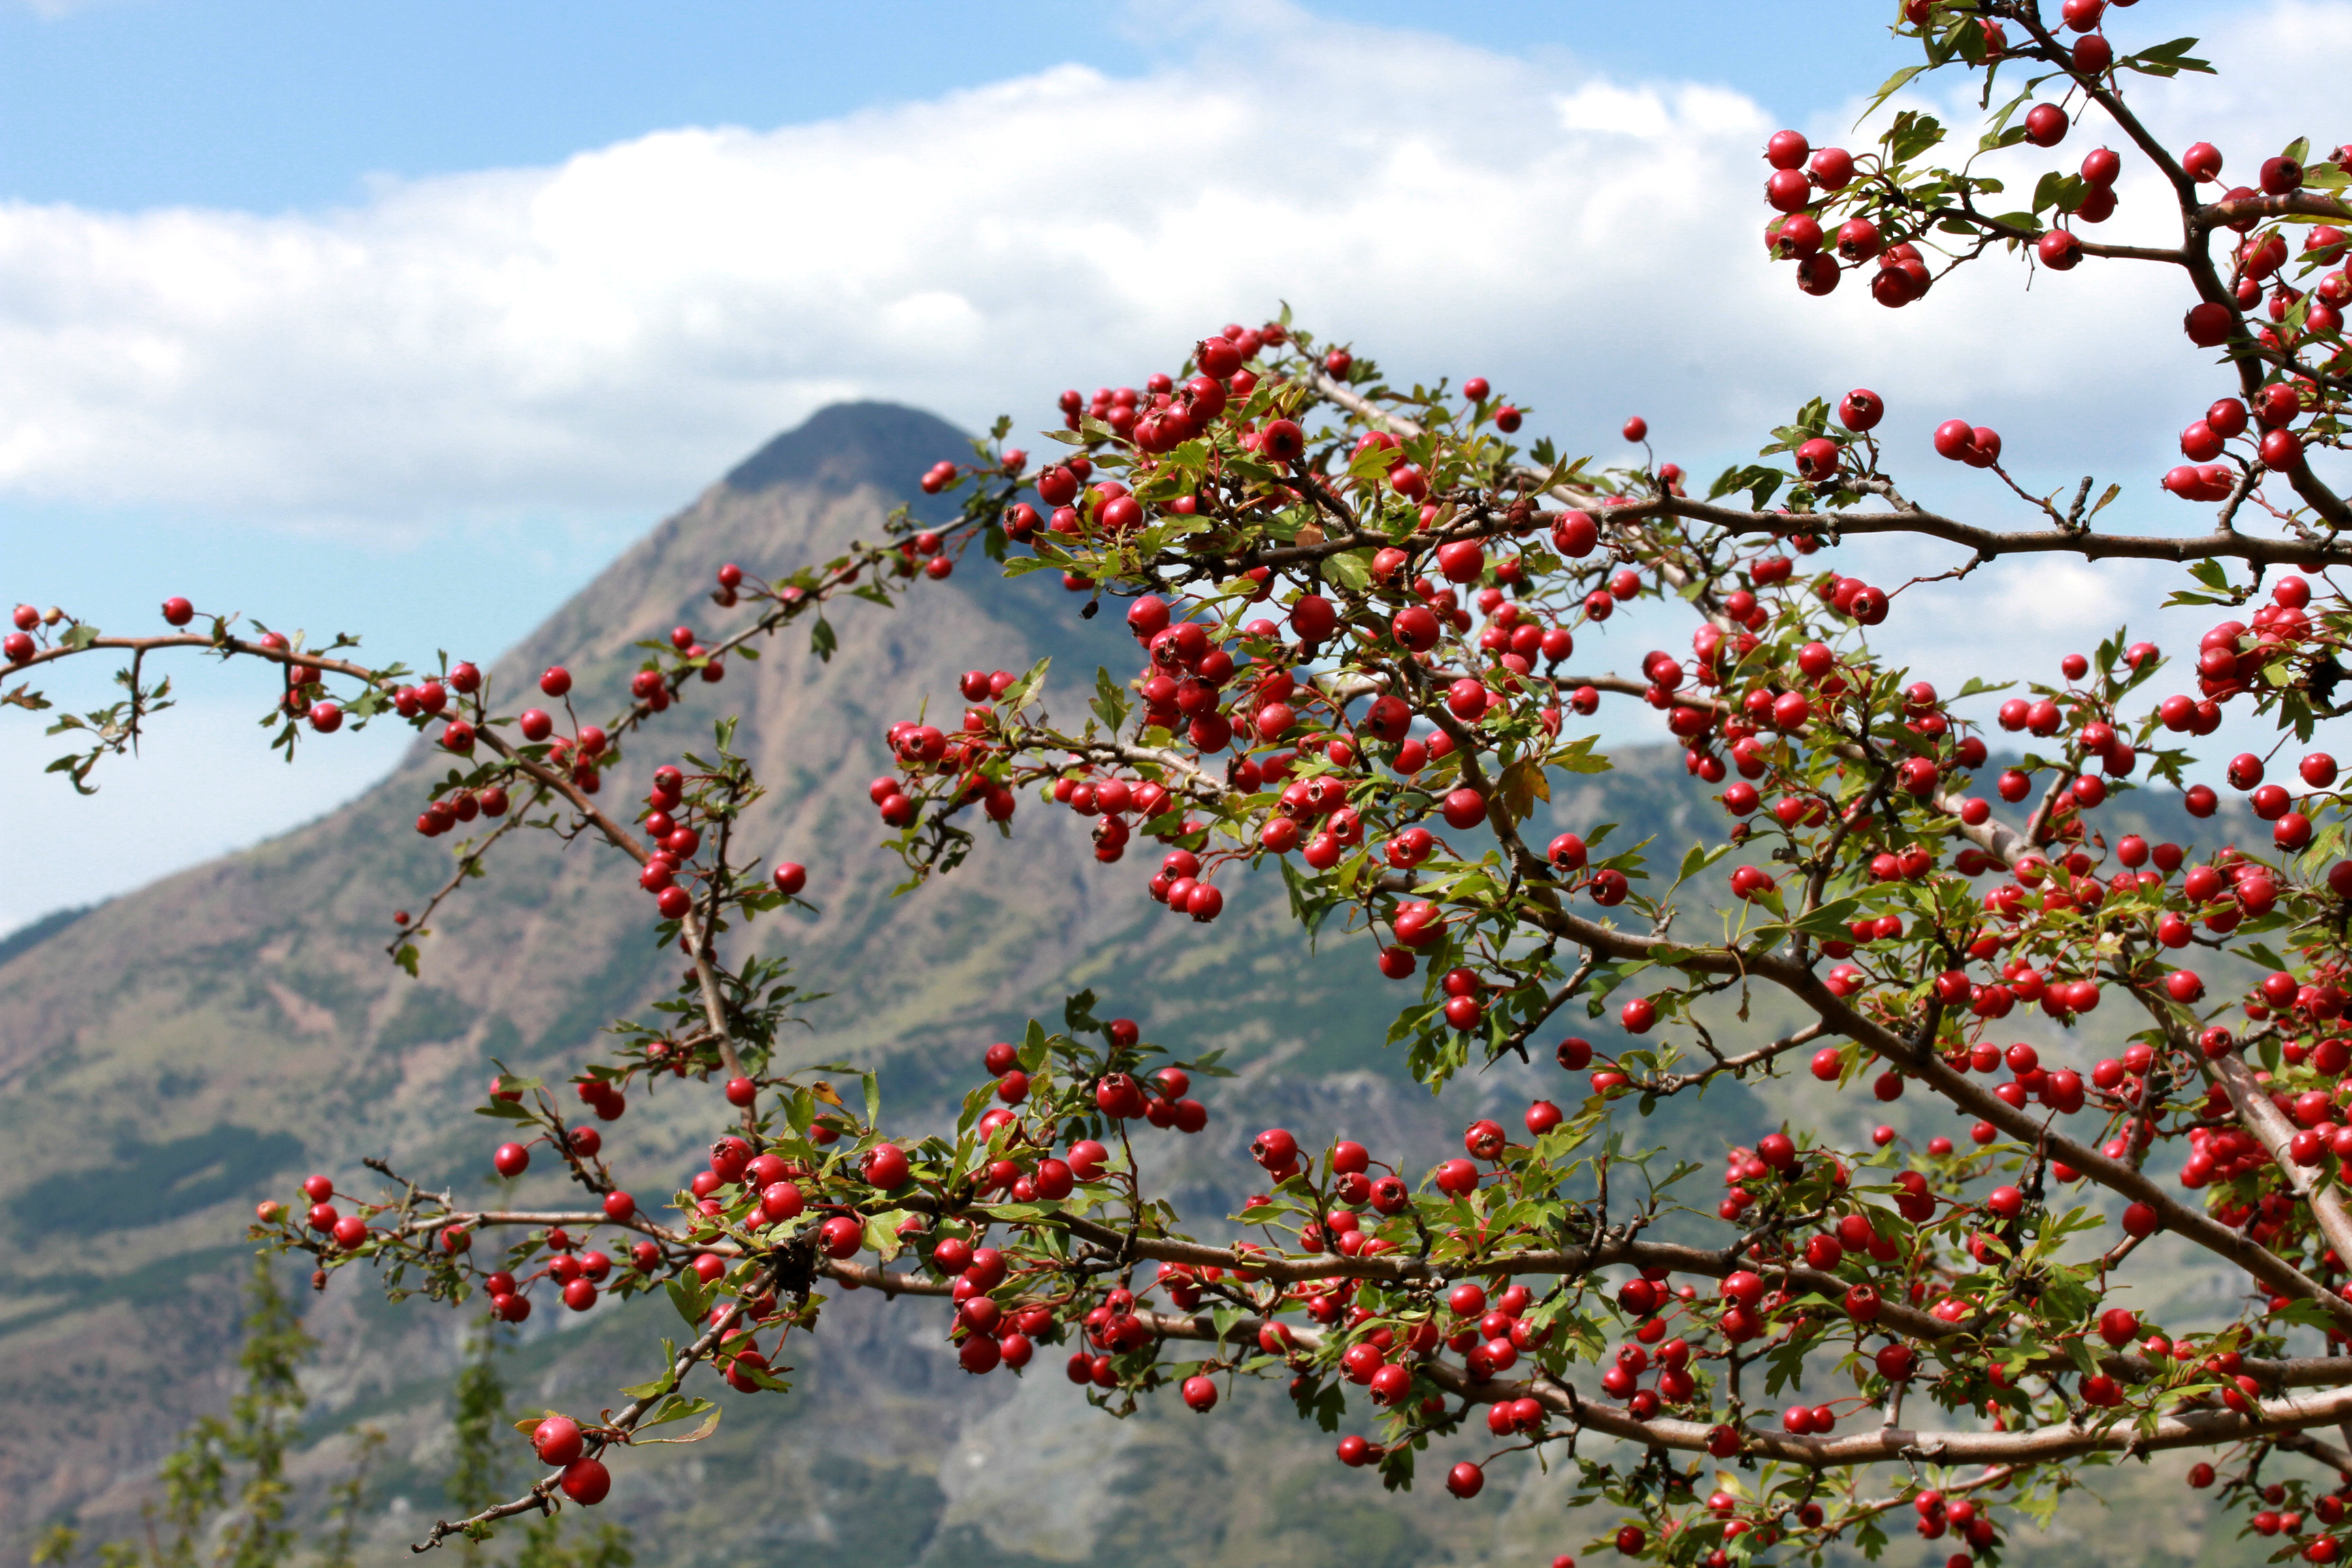 A colorful bush filled with rosehips sits in the foreground while a looming mountain peeks through under the clouds in Albania.